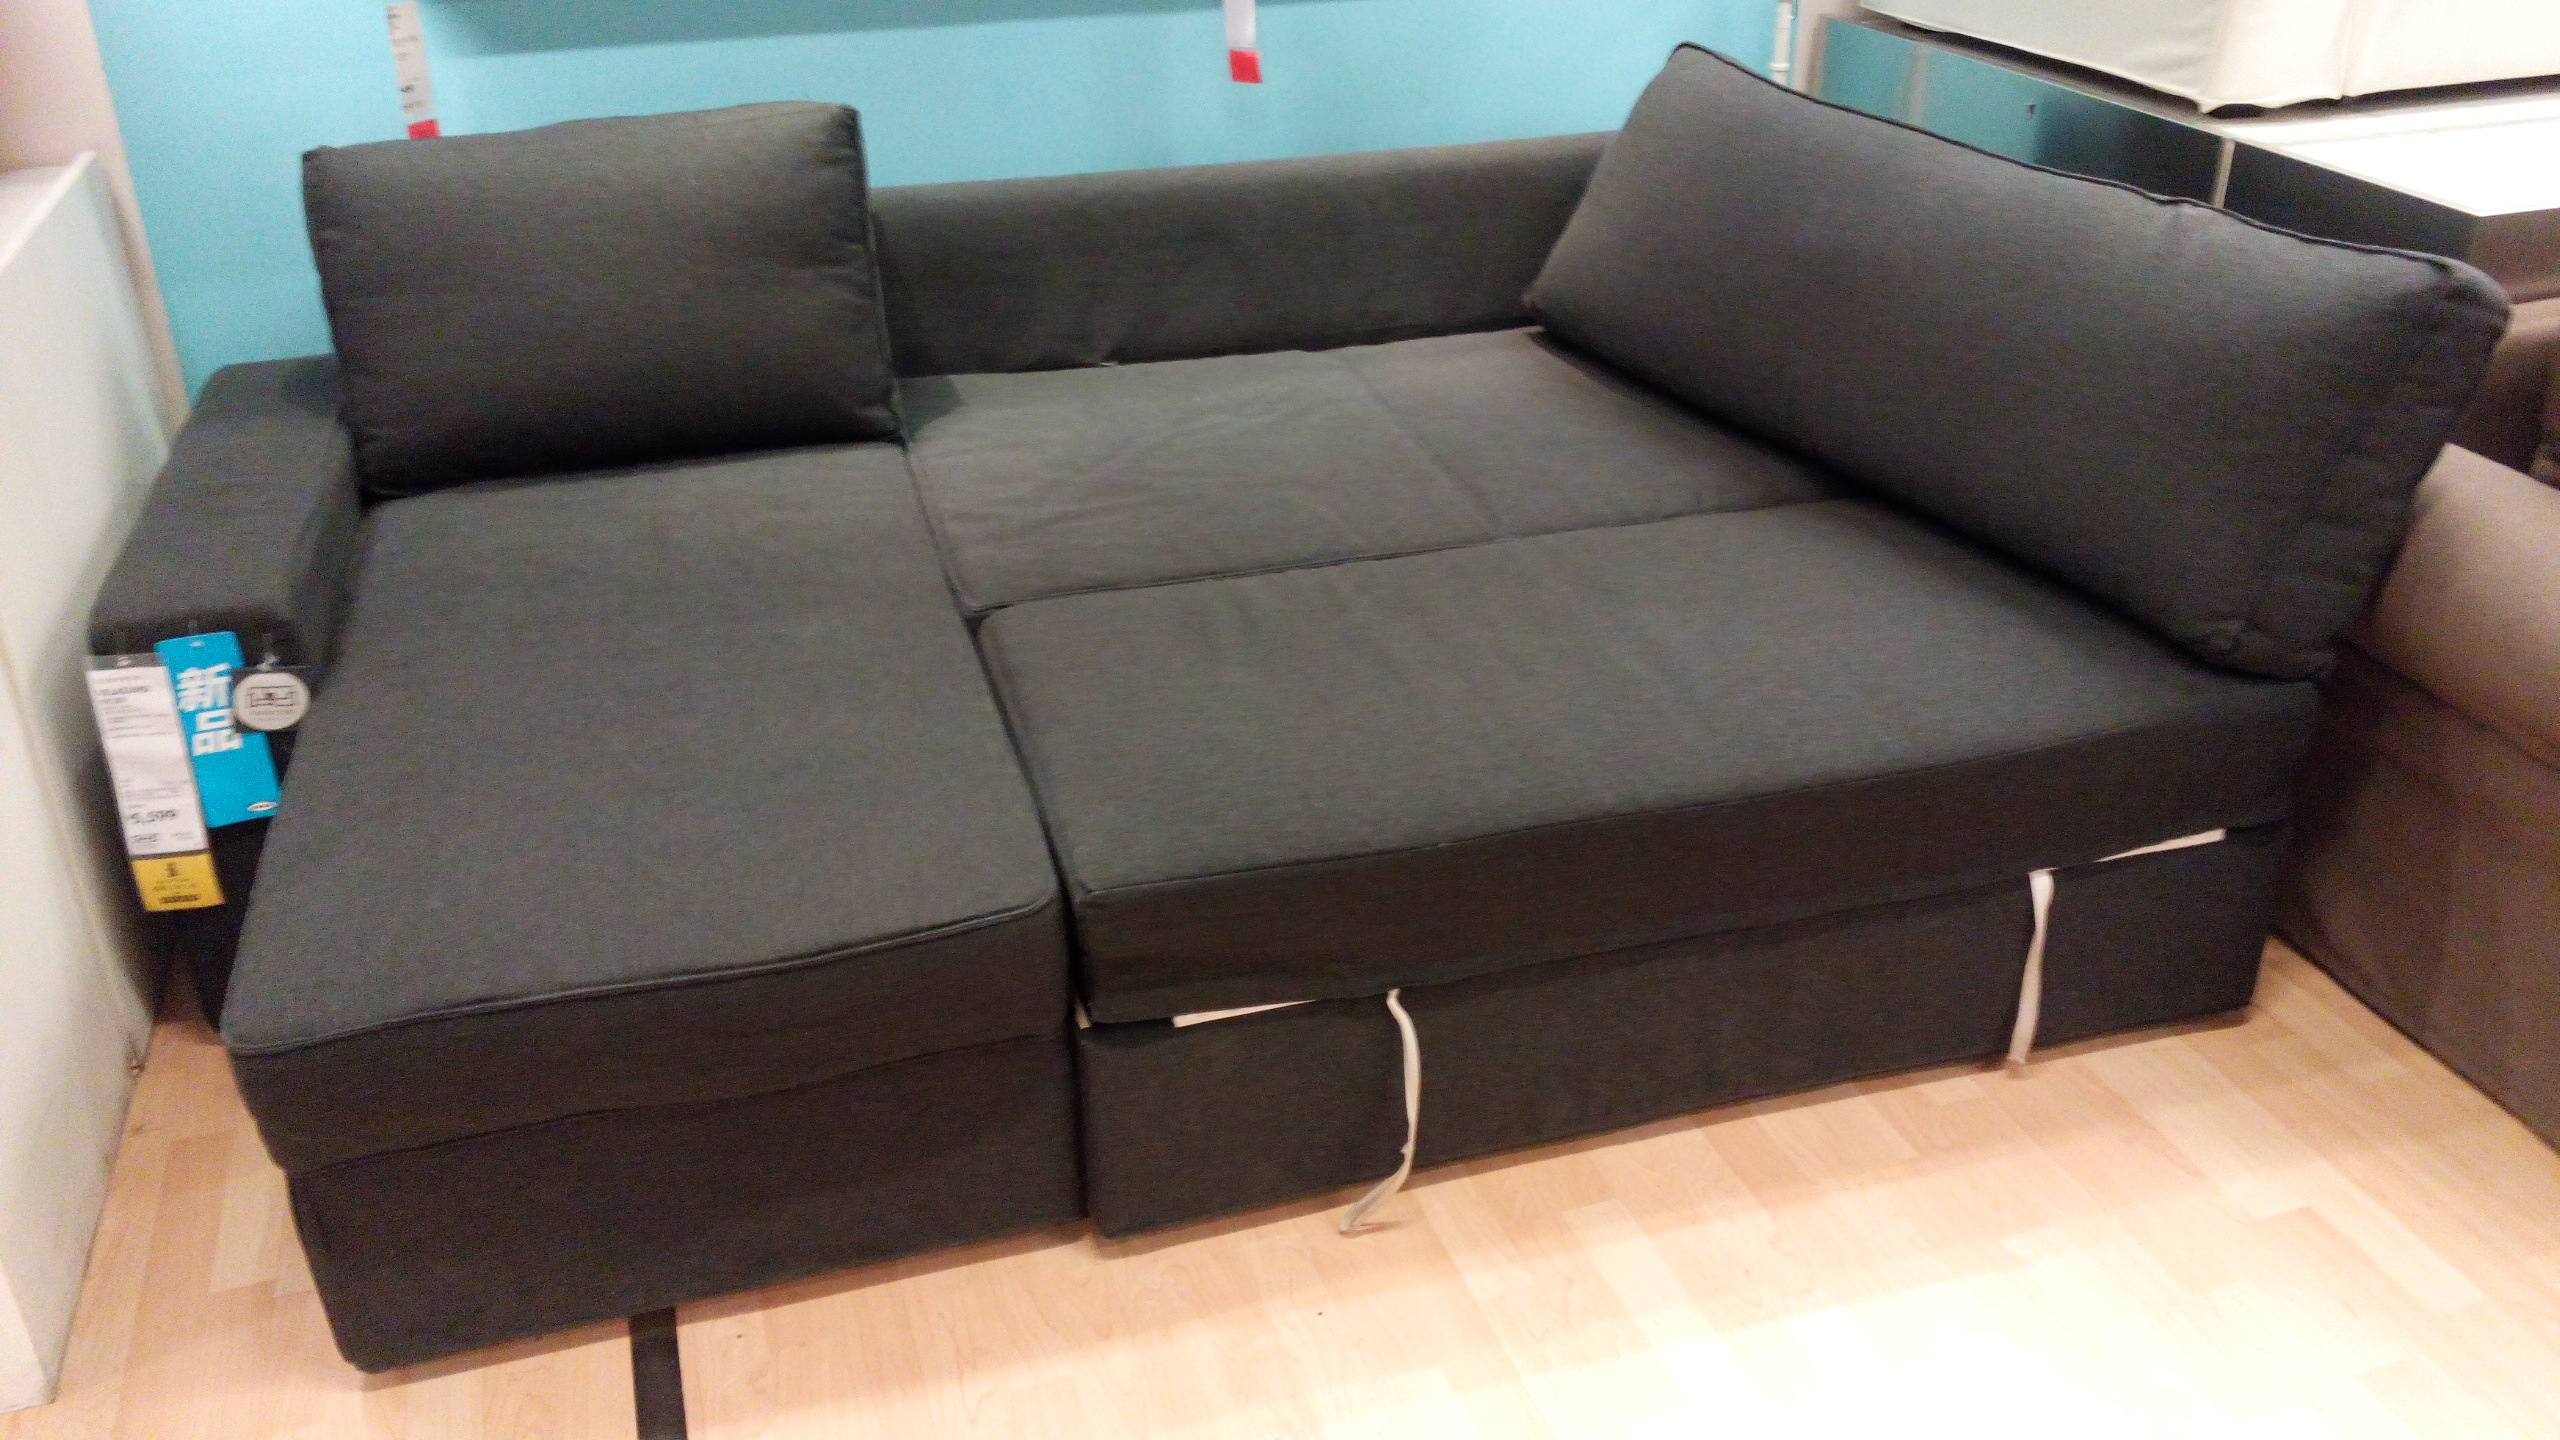 Ikea Sofa Vallentuna Erfahrung Top 10 Ikea Sofa Beds Reviewed Jan 2019 Sleep Good Tonight